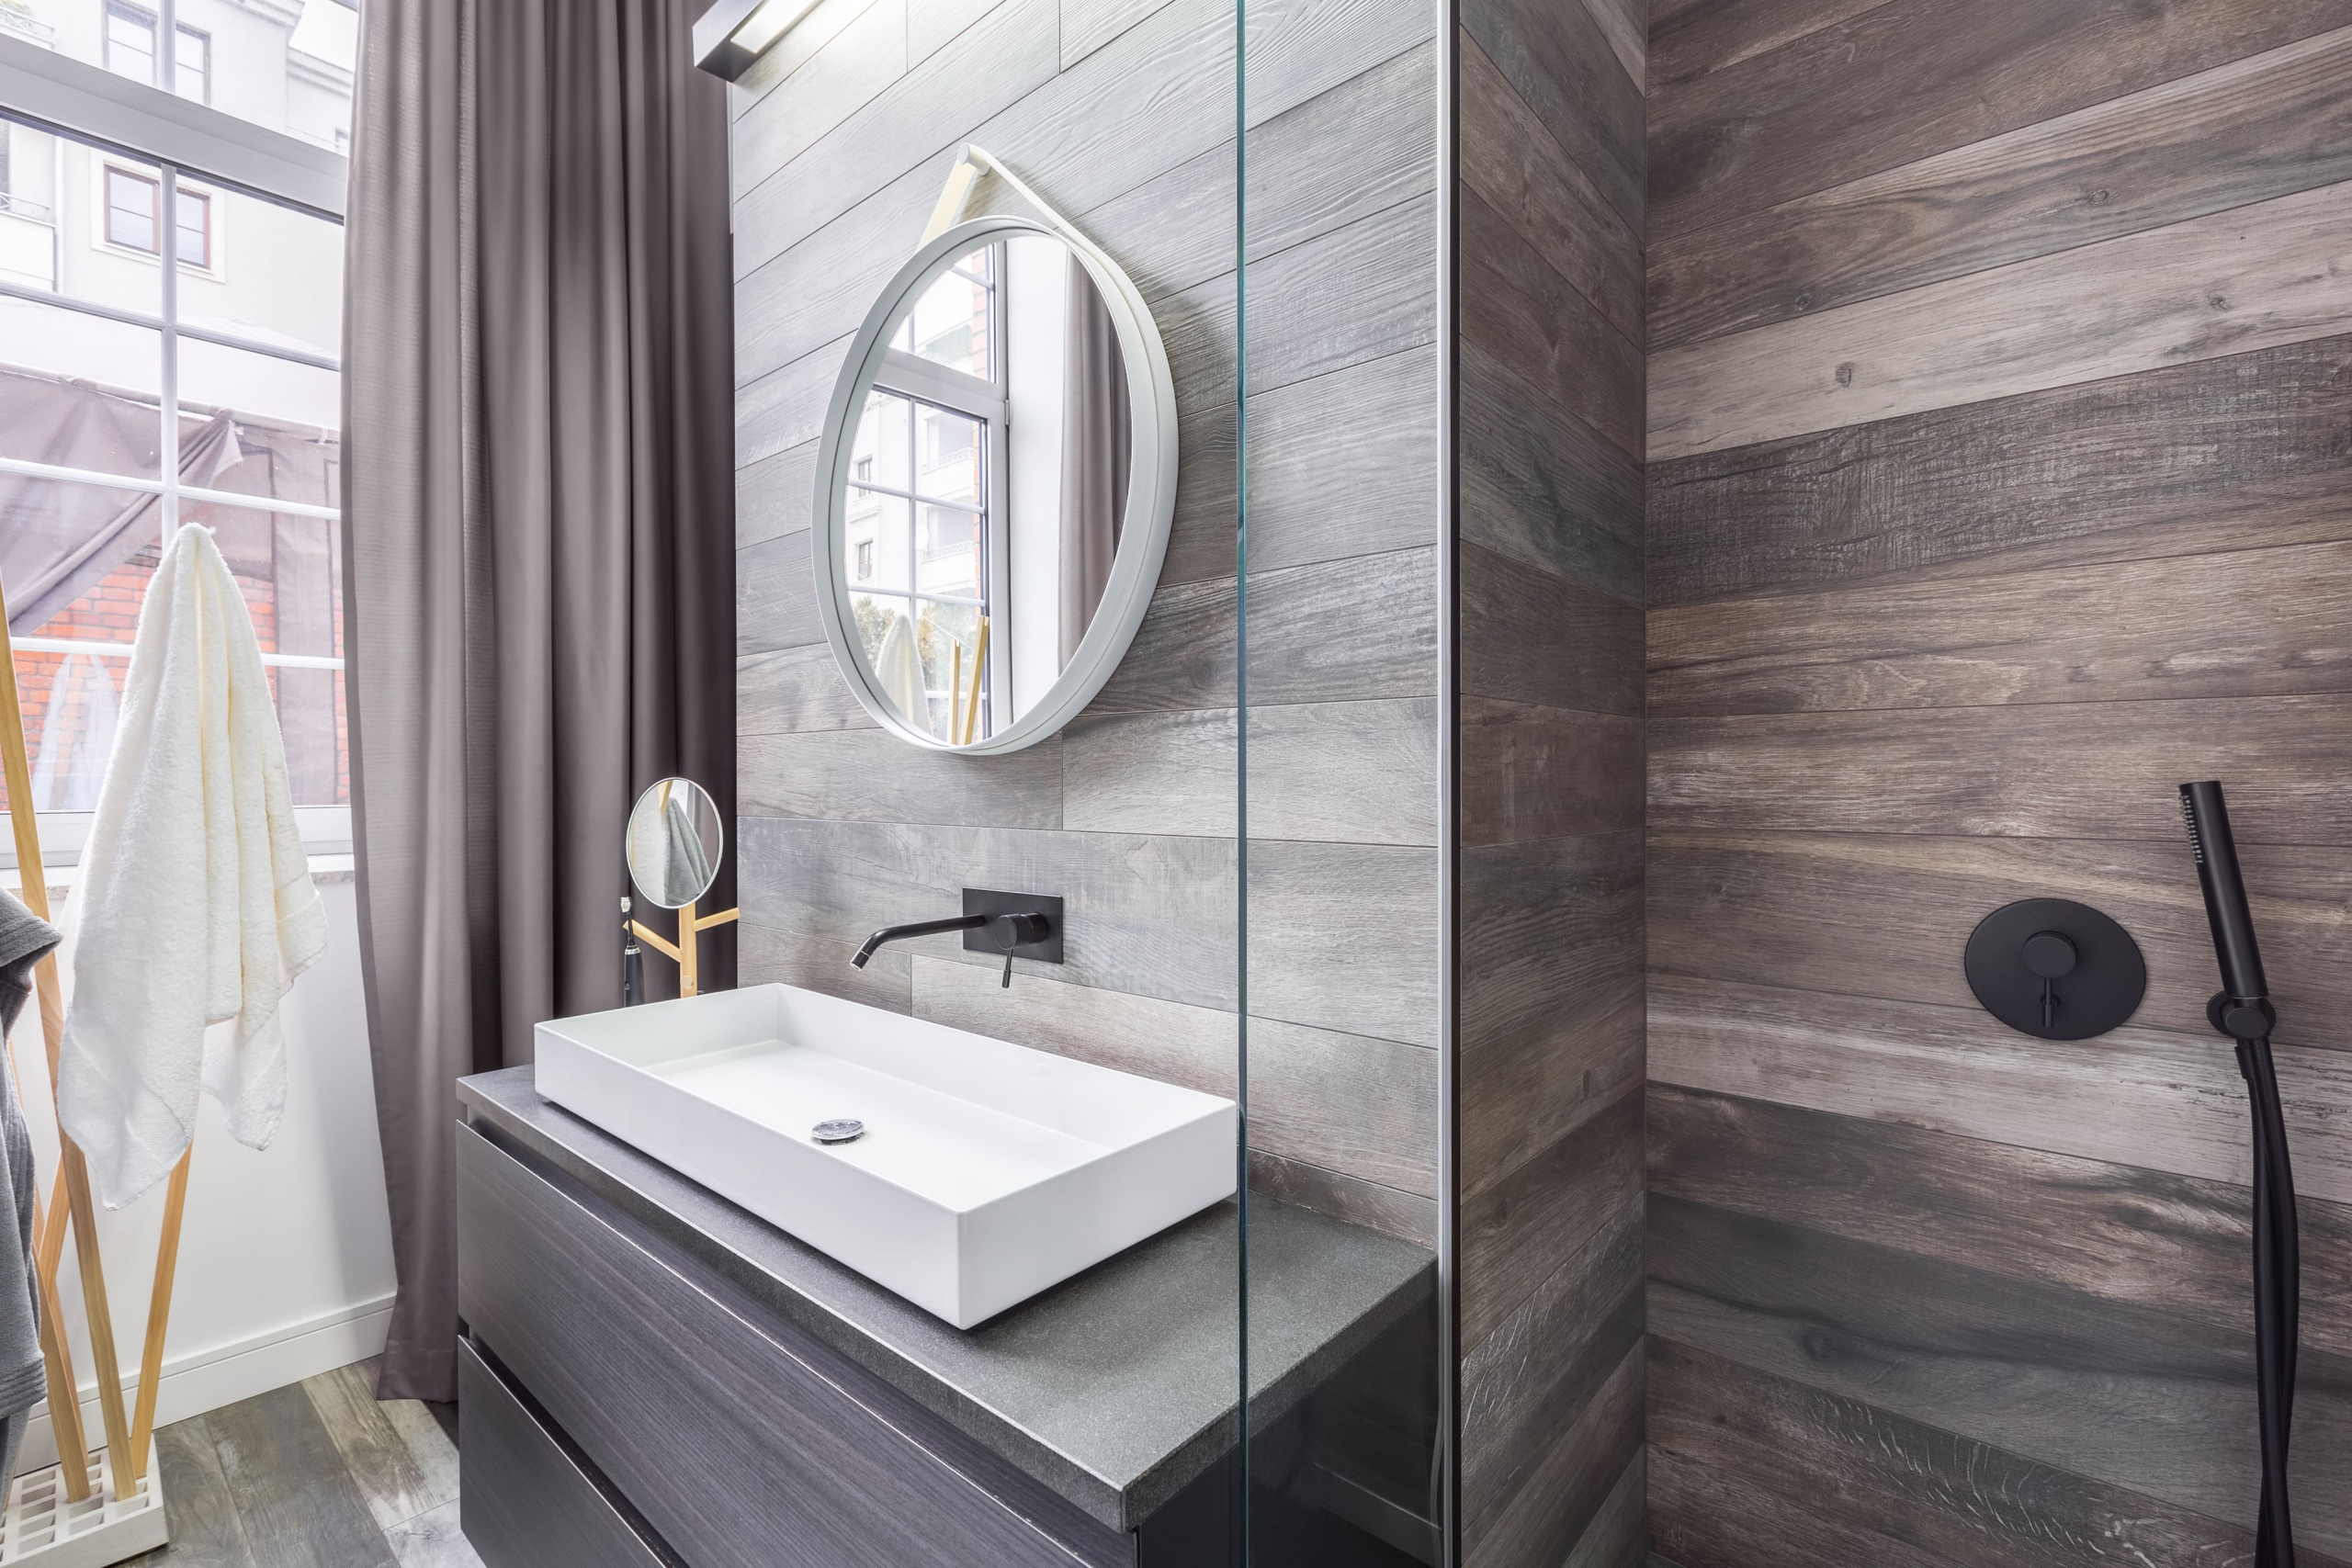 Wood-look ceramic shower tile